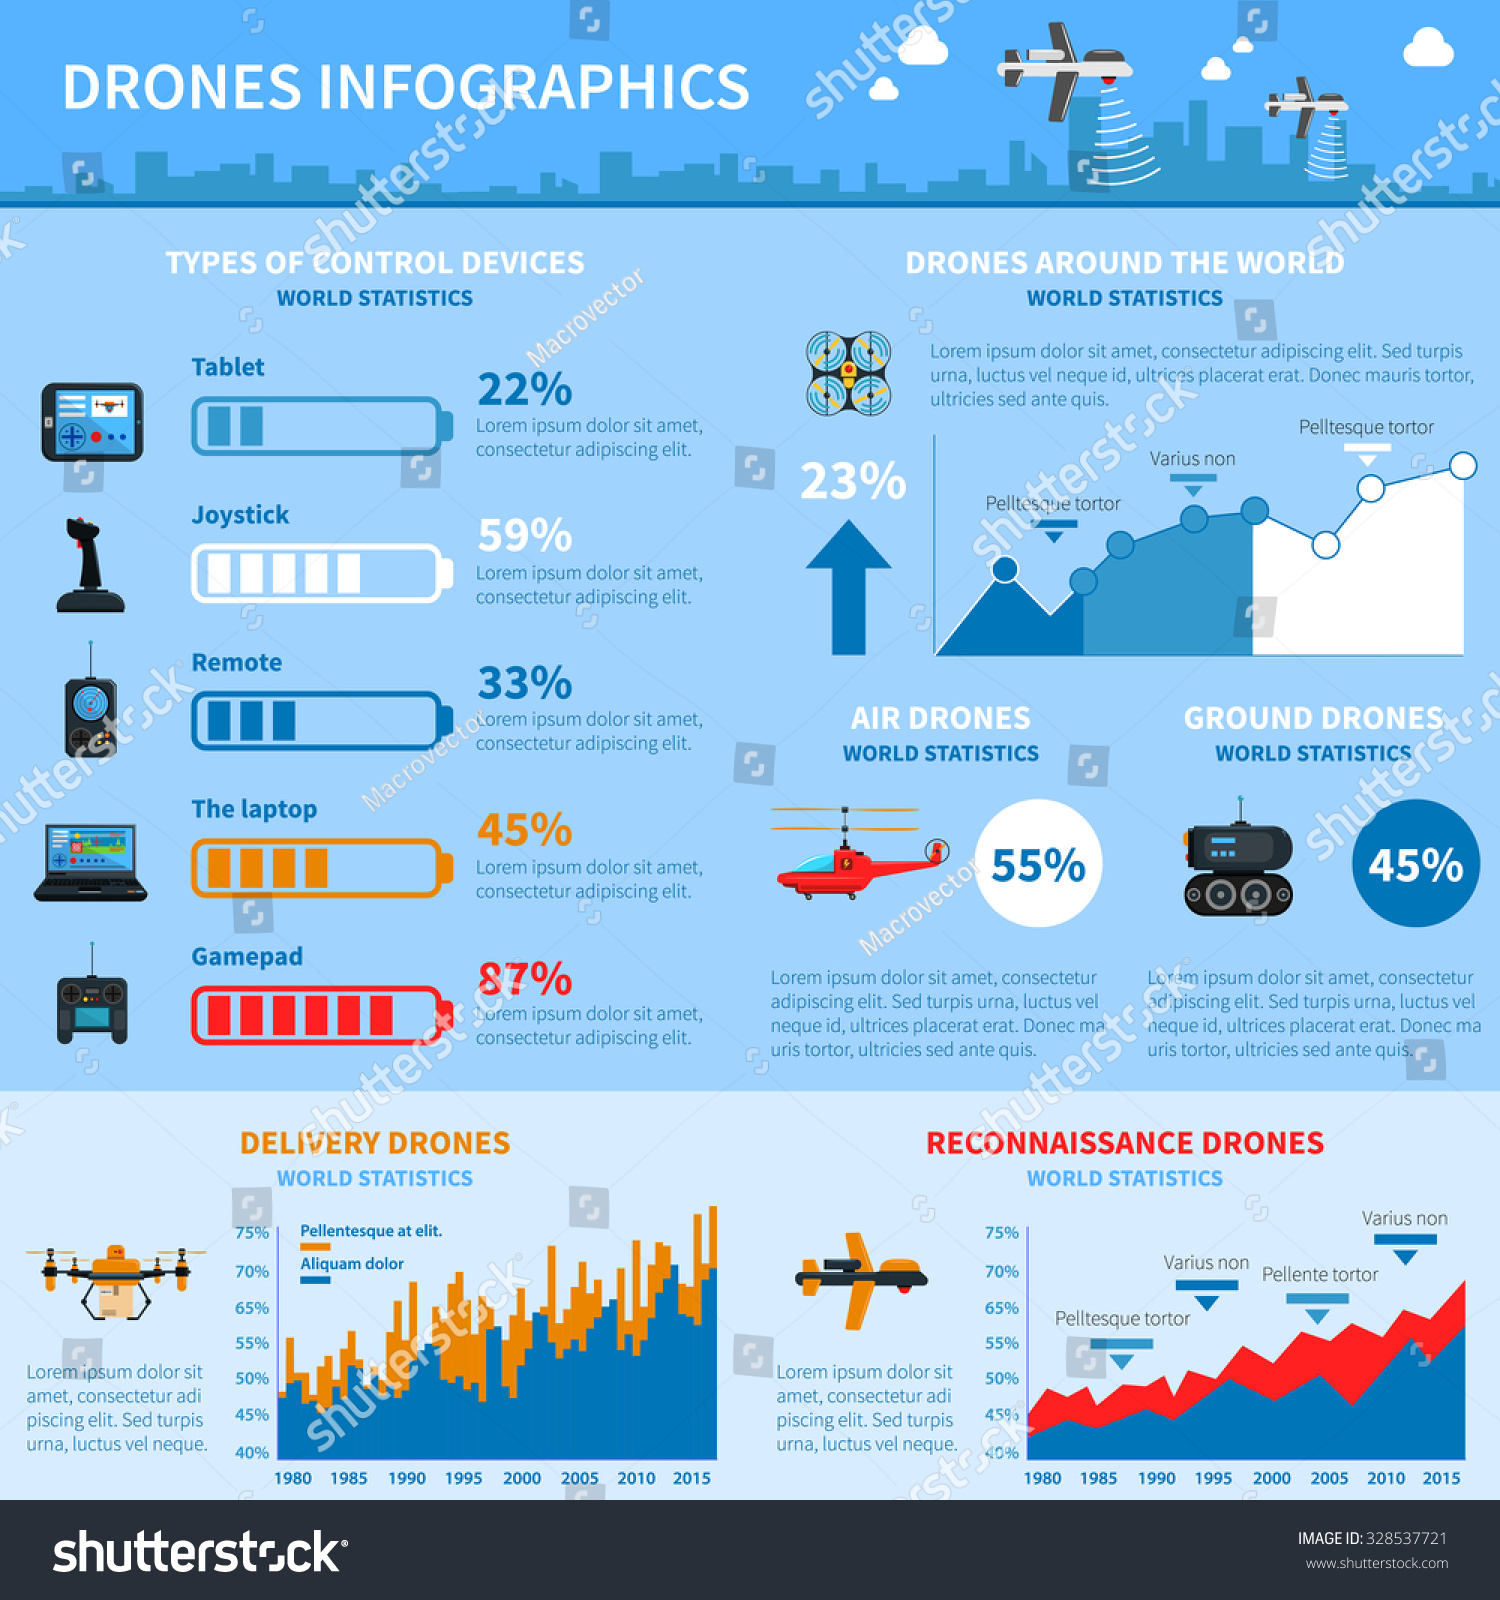 24 Interesting Drone Statistics and Facts (March 2018)